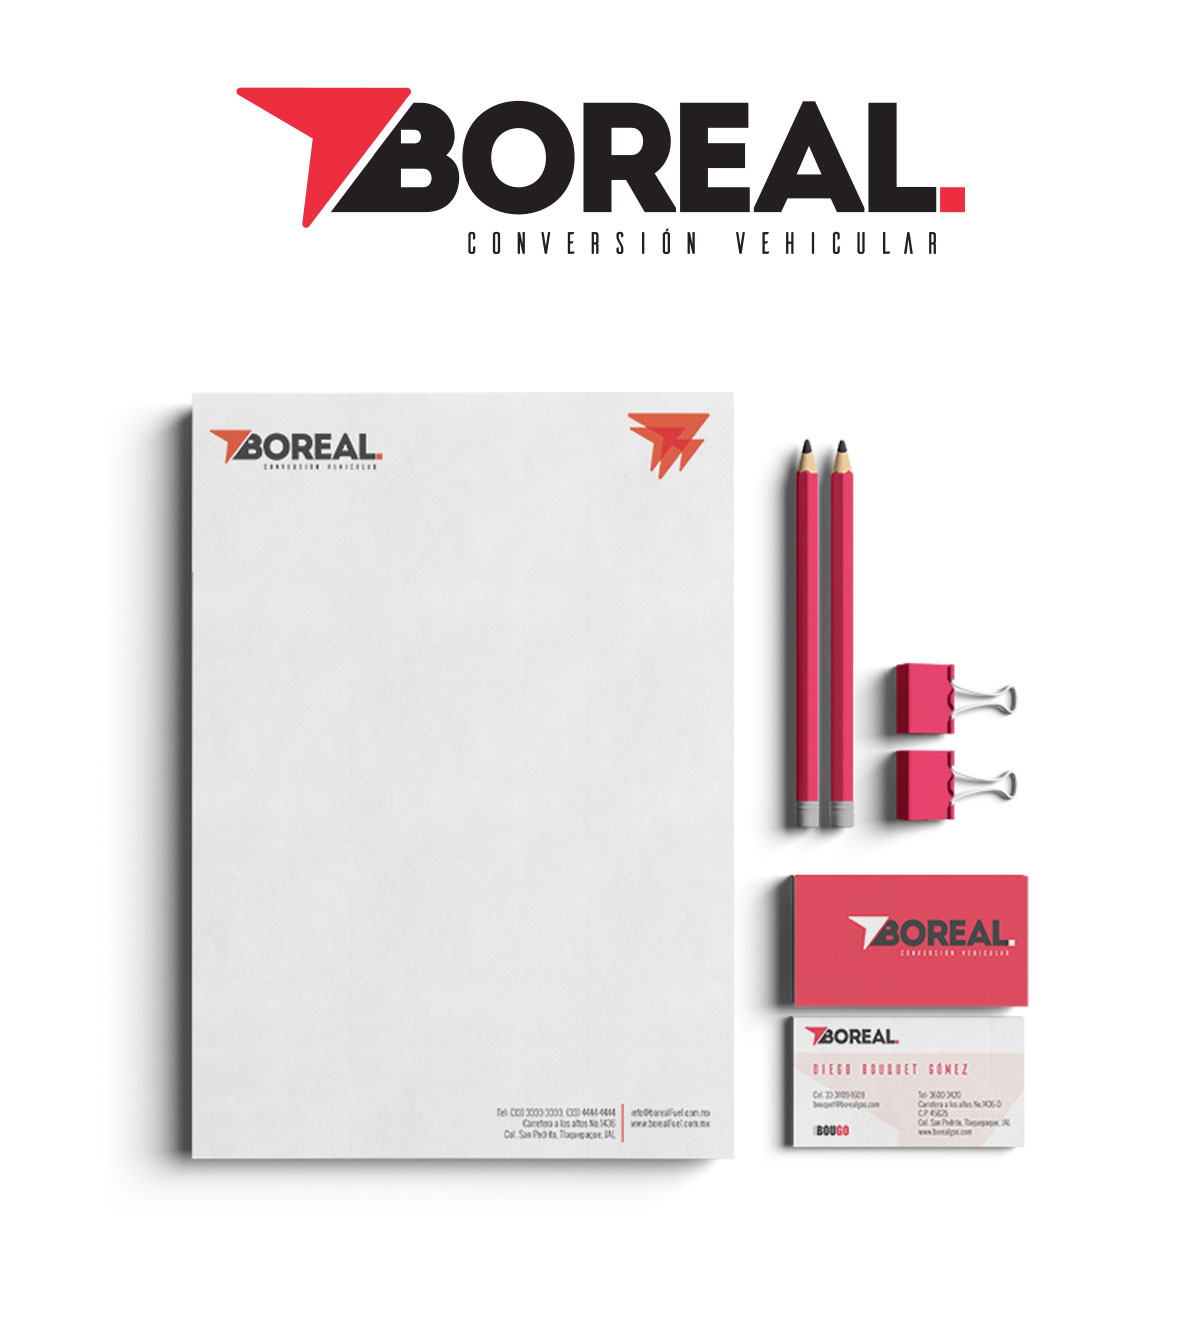 branding project BOREAL 08